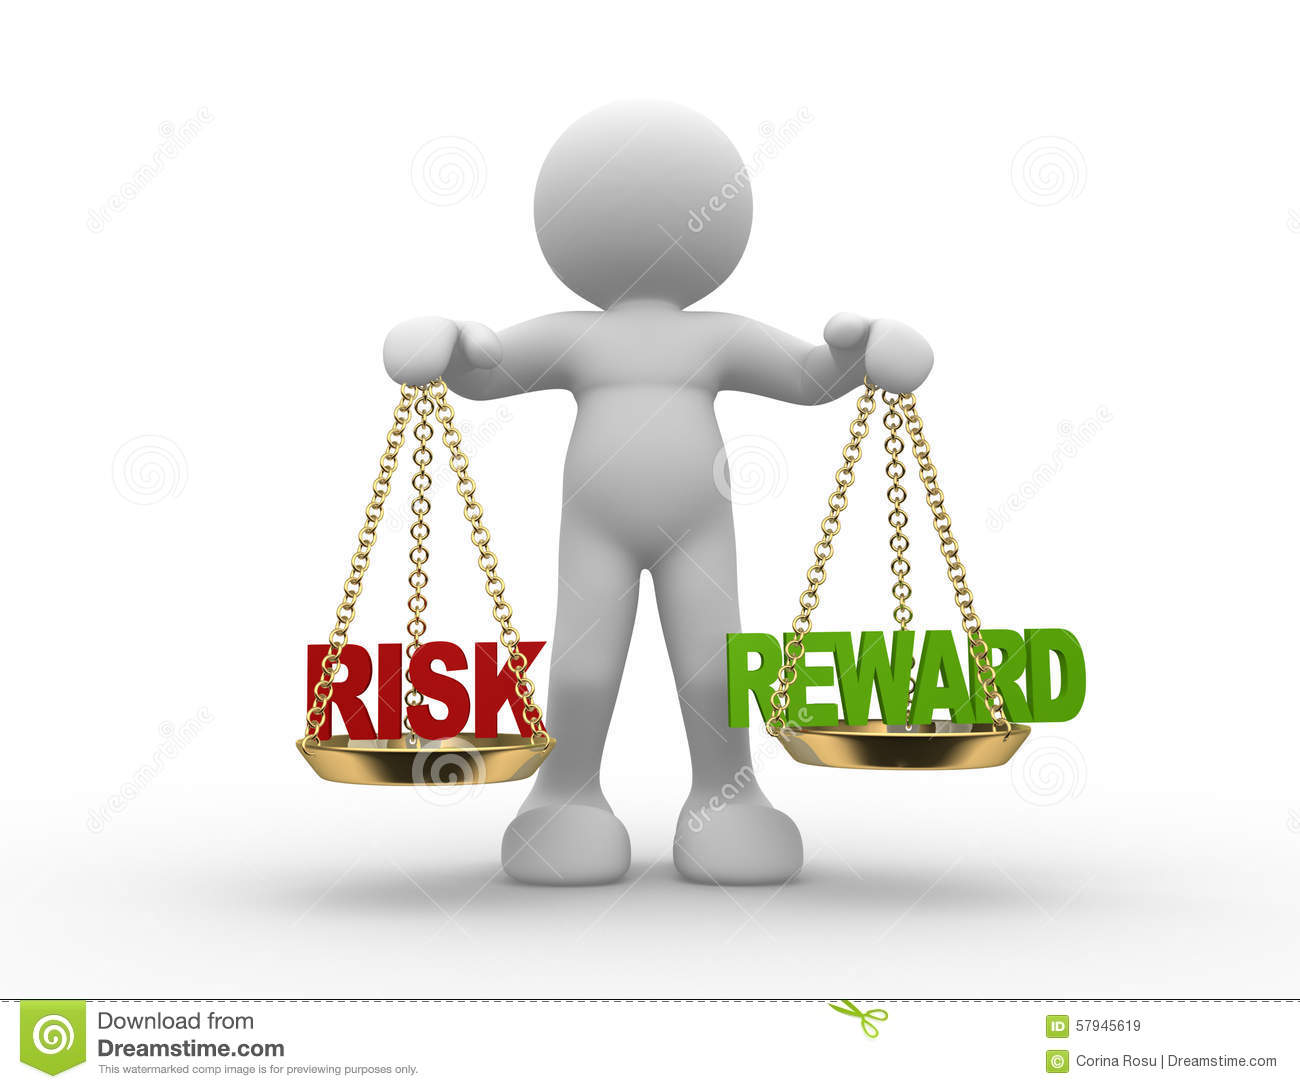 risk reward nature of binary options